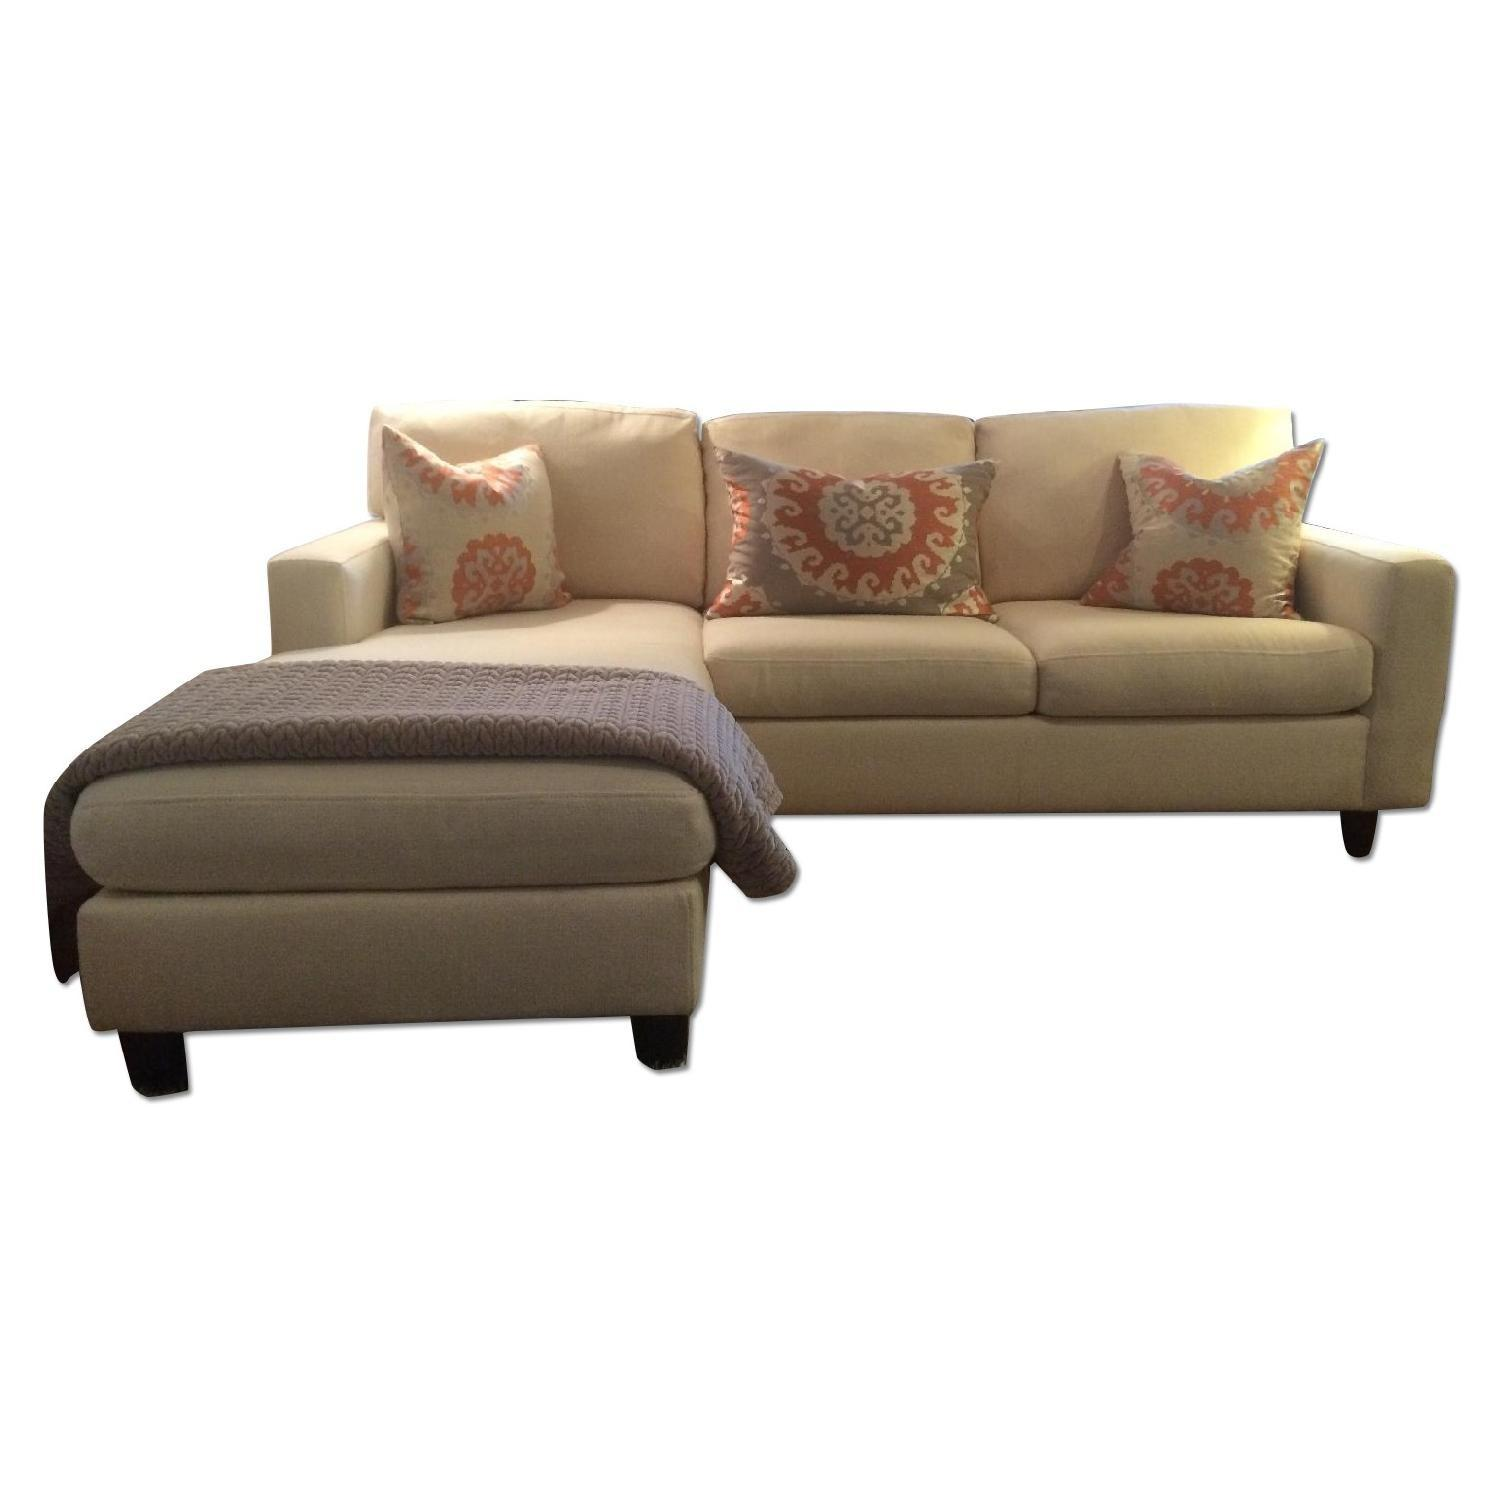 sofa w chaise how to replace cushion covers desi living ivory tweed sleeper optional